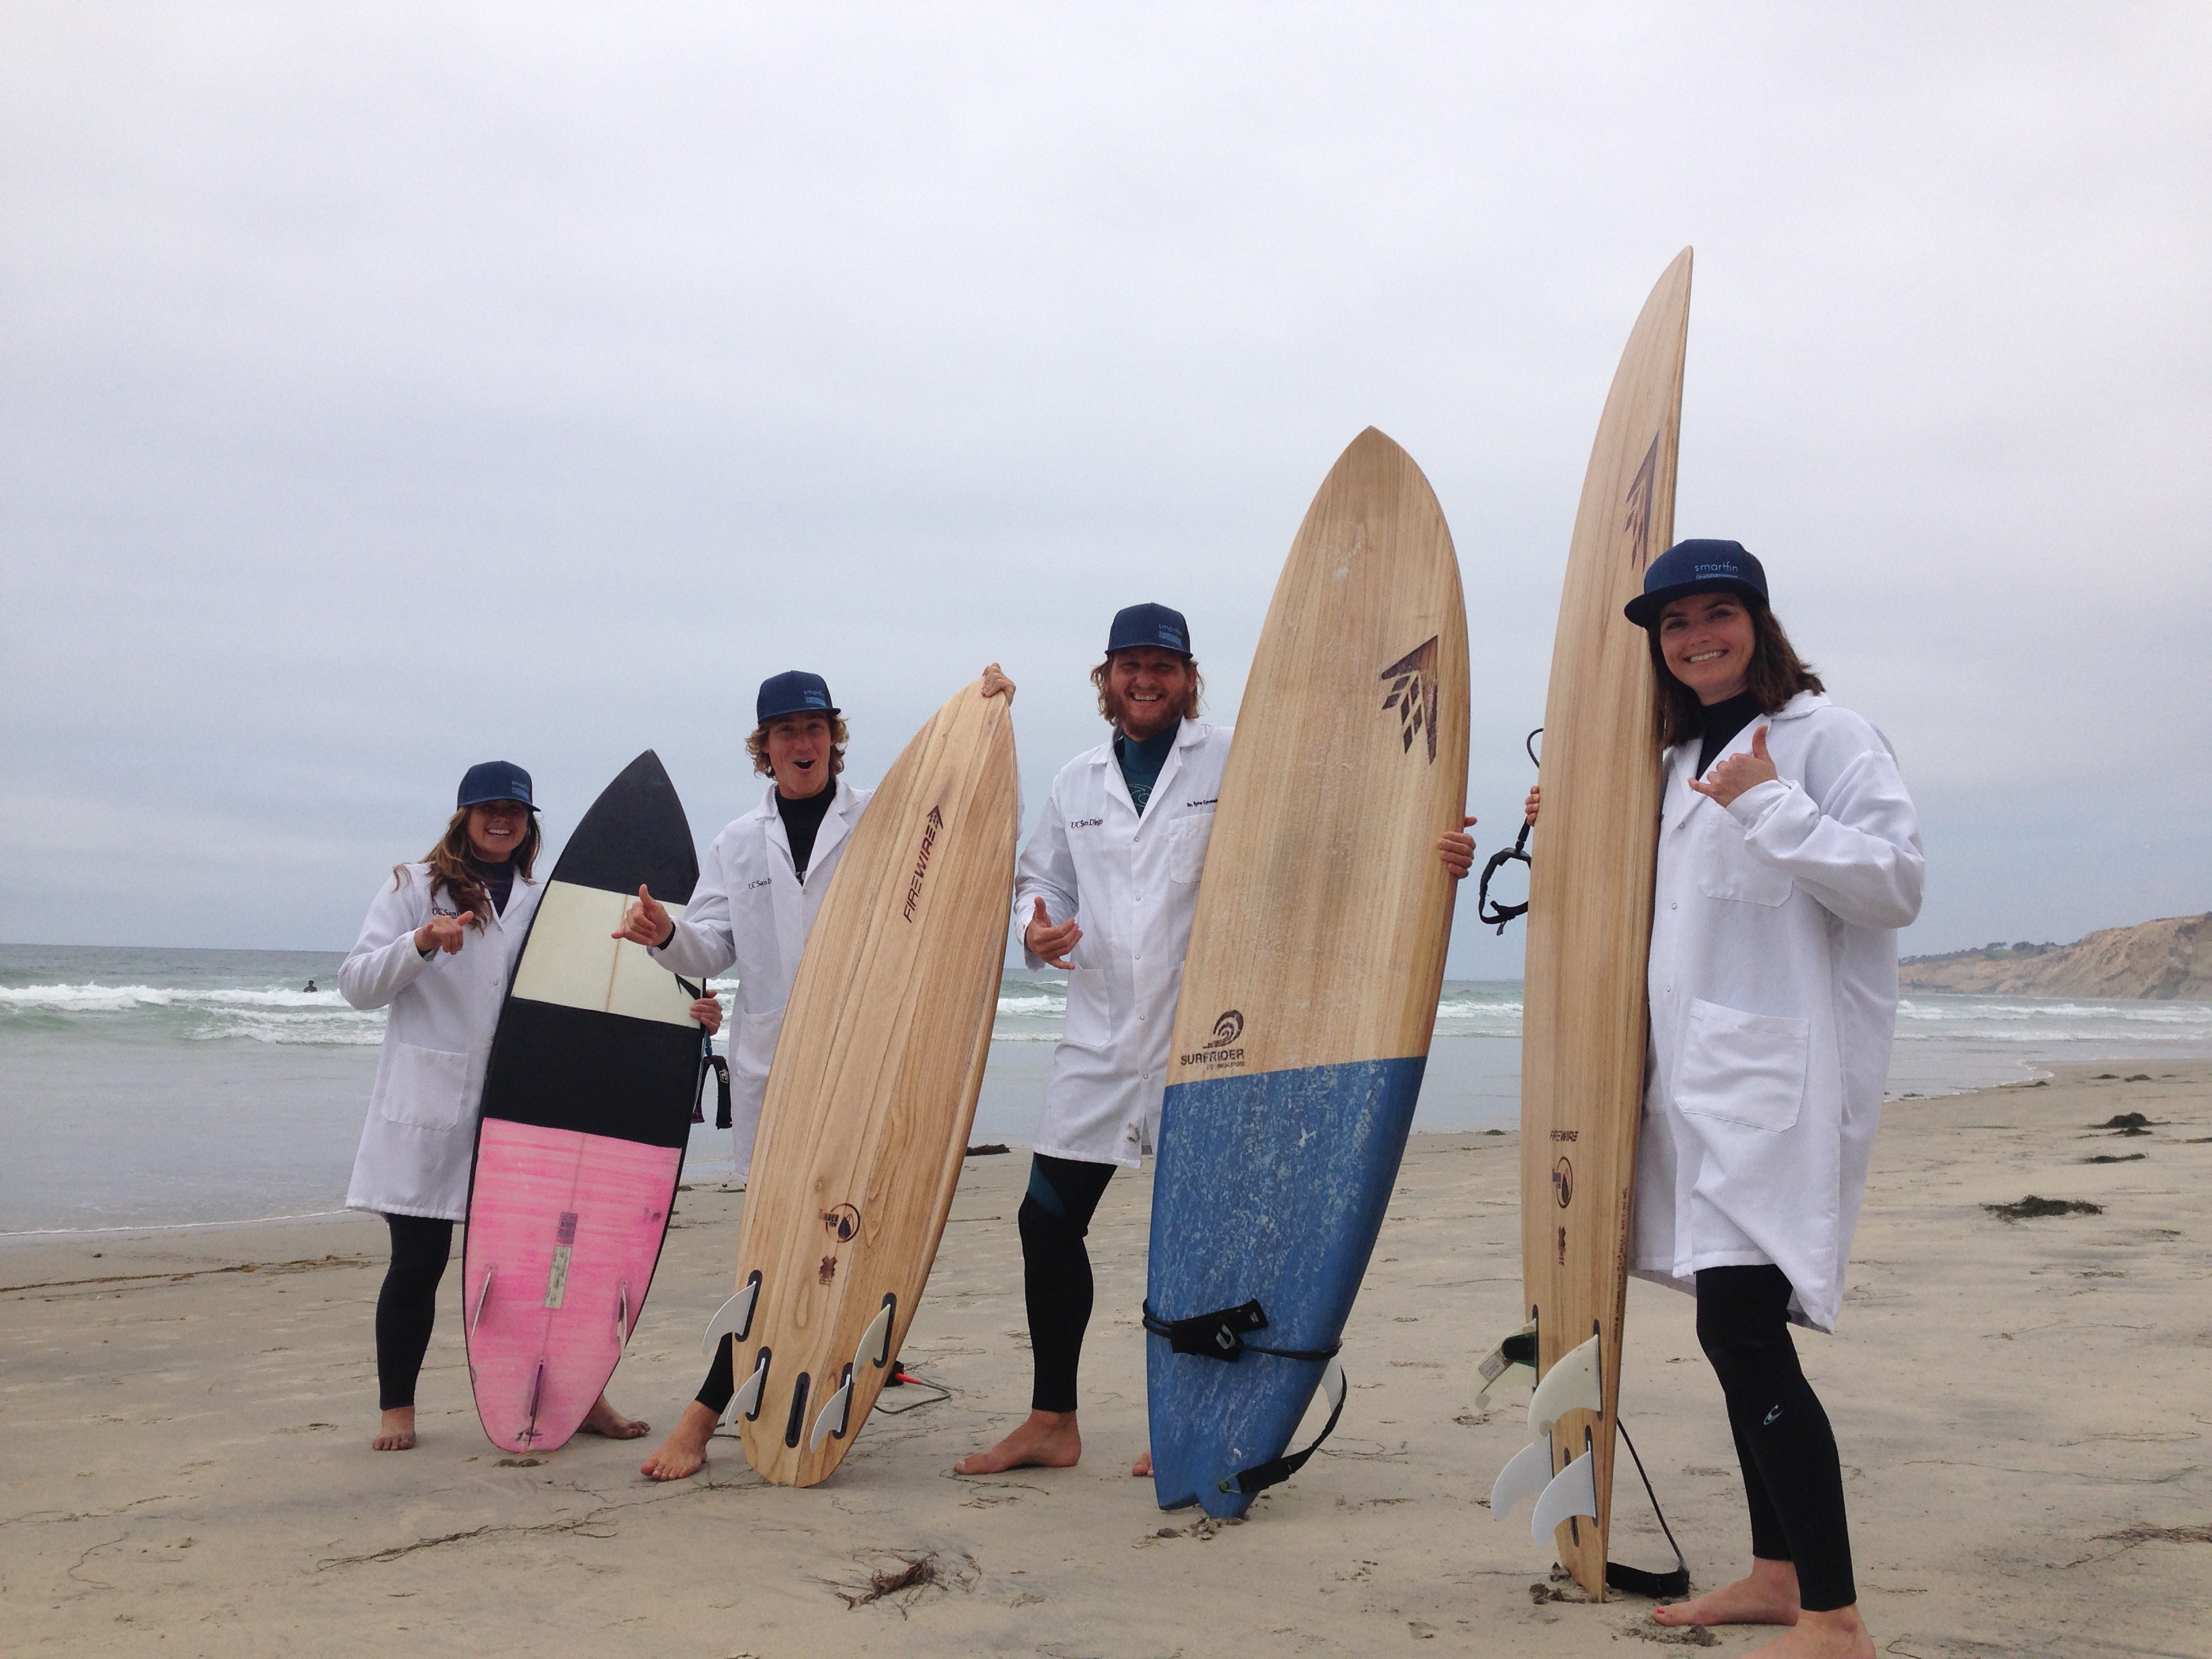 Four Smartfin surfers with surfboards and lab coats pose on the beach.